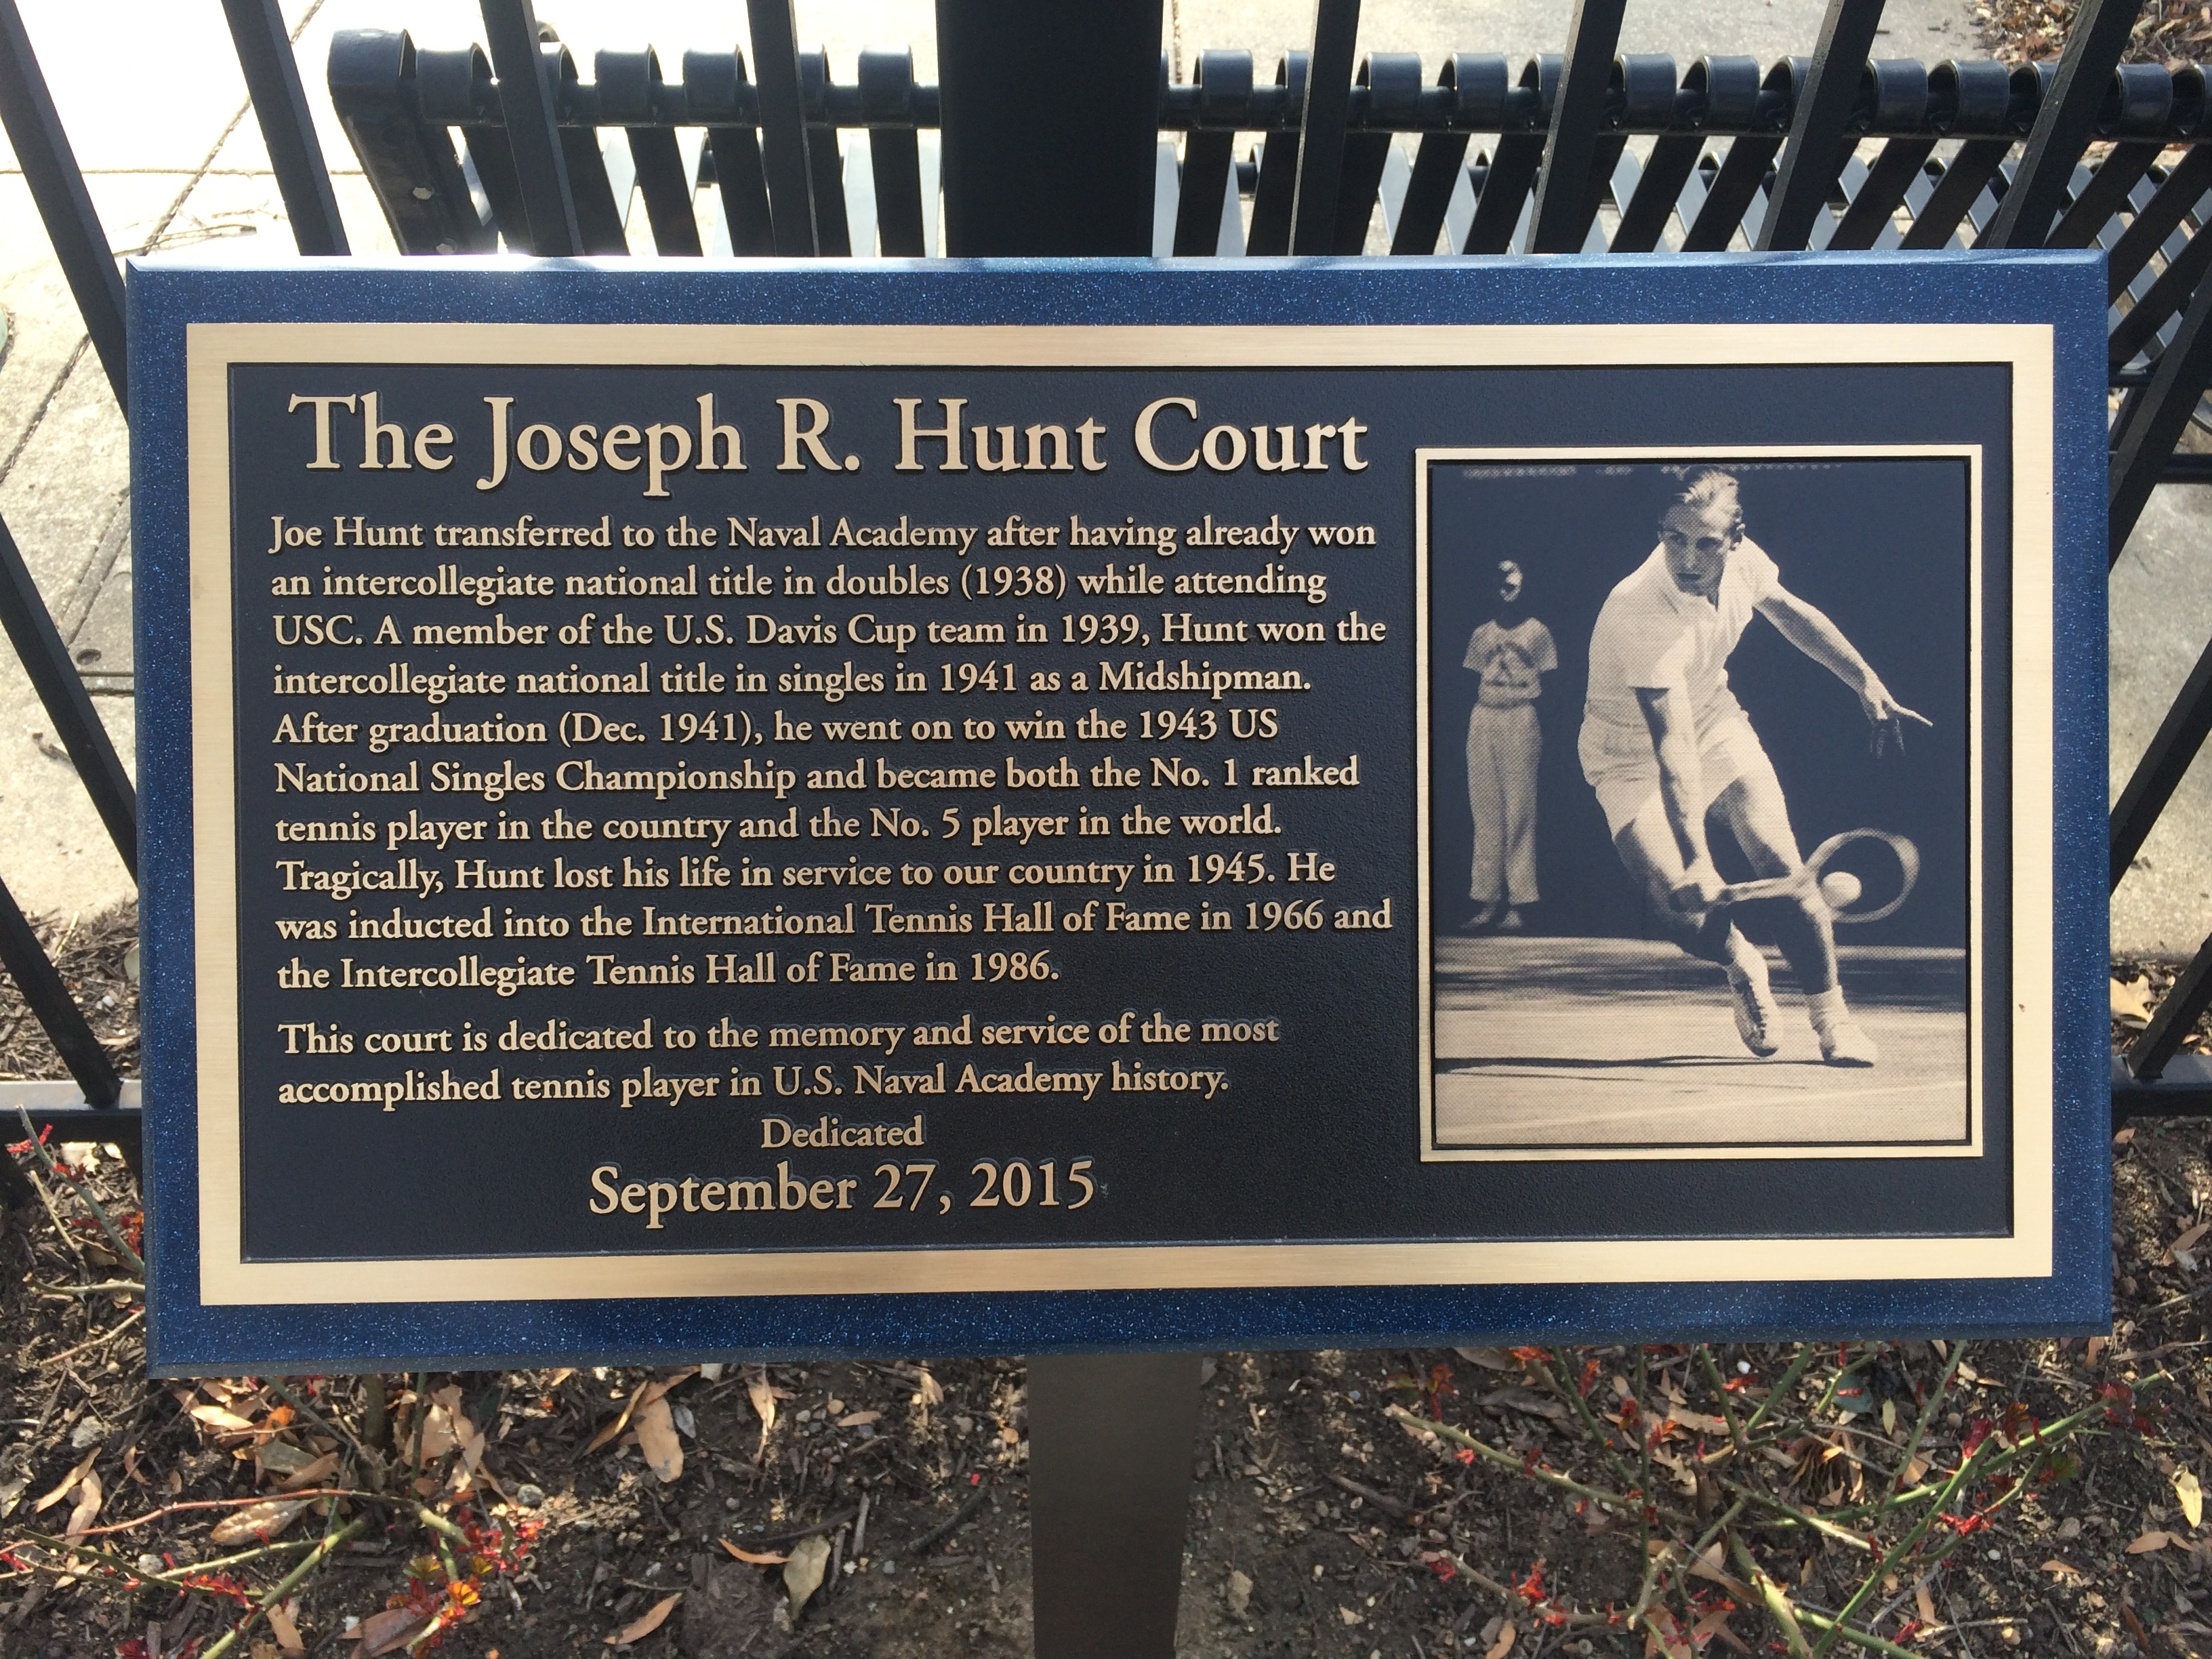 The Joseph R. Hunt Court Marker